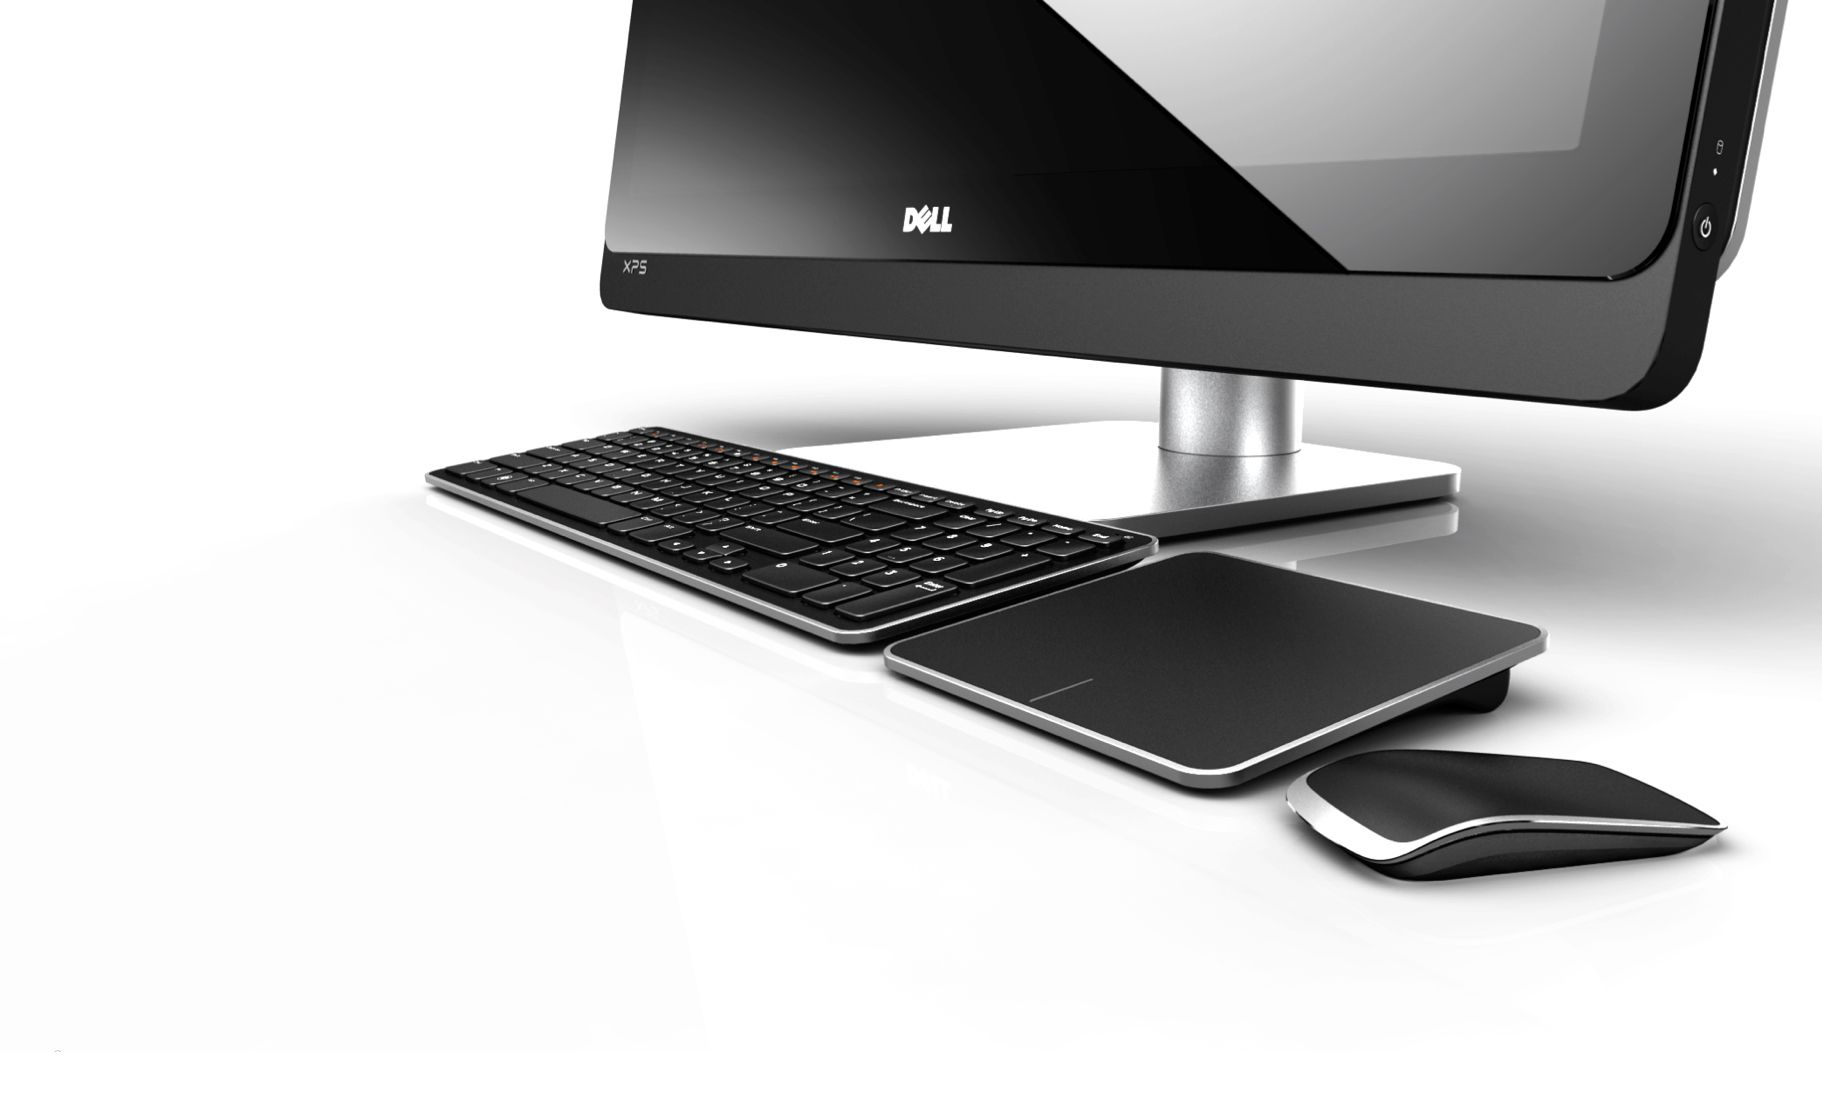 Dell Ecosystem with the new touchpad (Dell TP713) and wireless mouse (Dell WM713), Dell EDG SDC (Experience Design Group, Singapore Design Center)